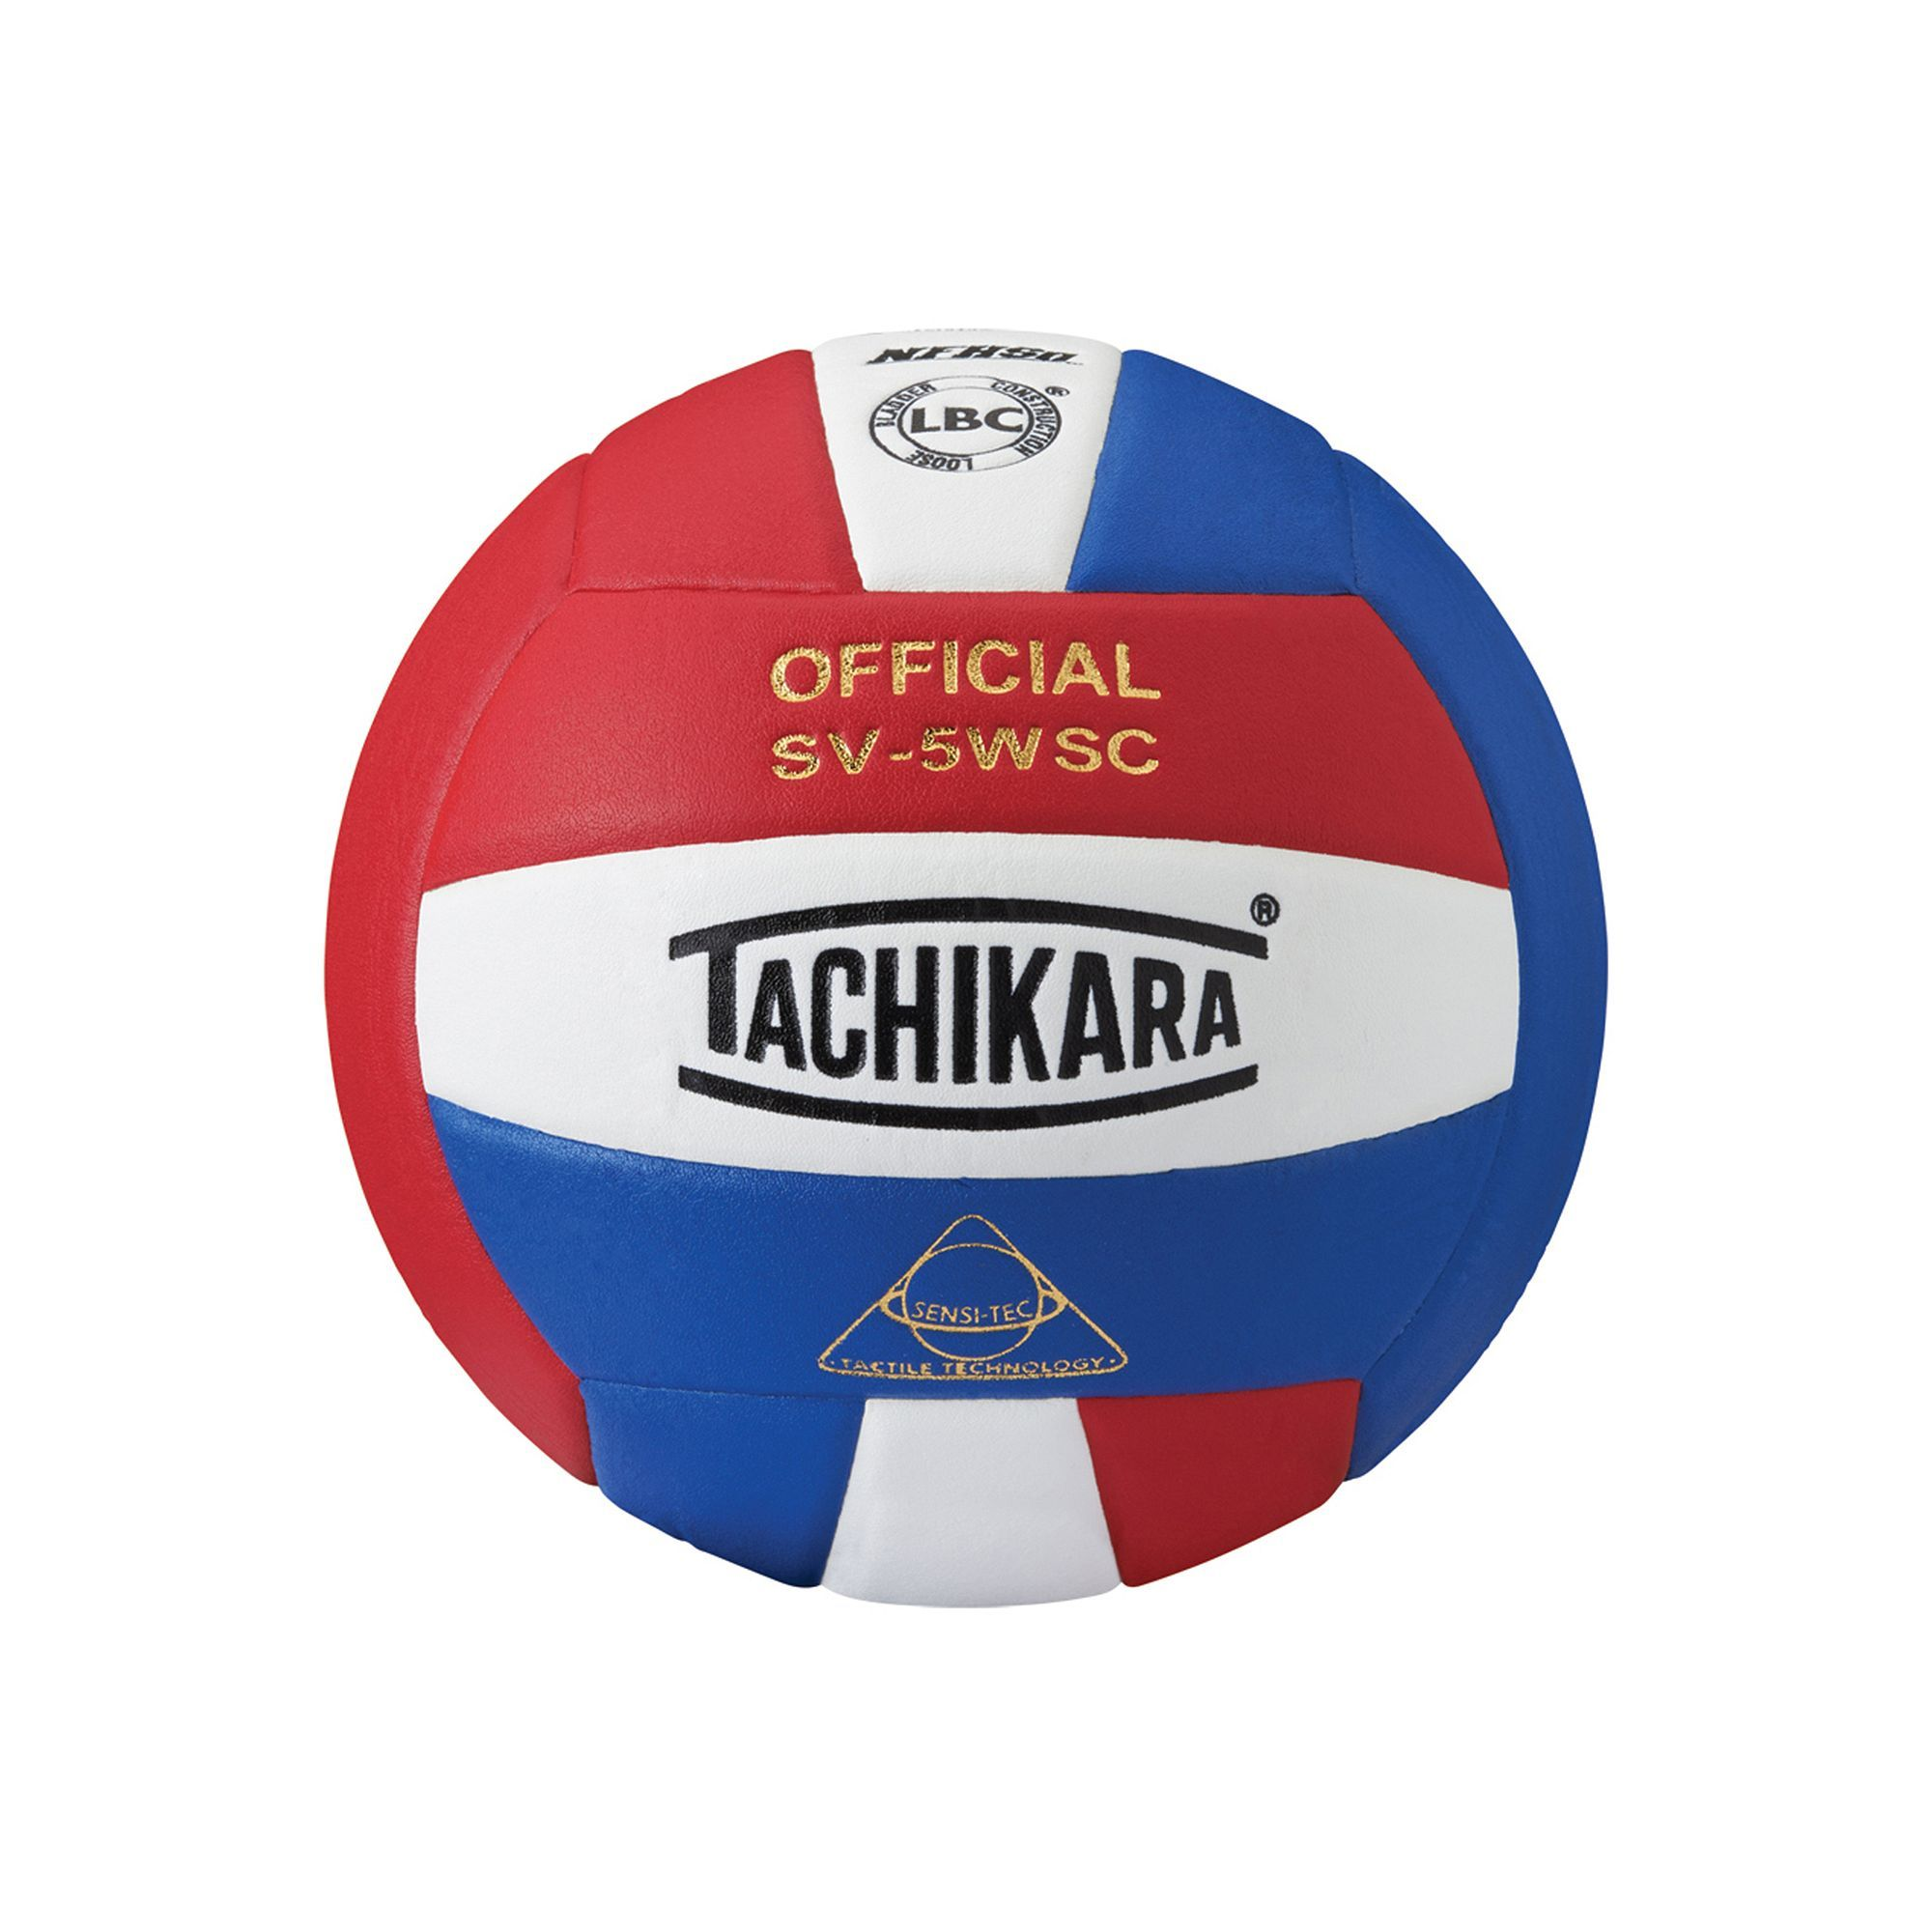 Tachikara Official Sv5wsc Microfiber Composite Leather Volleyball Volleyball Sports Tachikara Volleyball